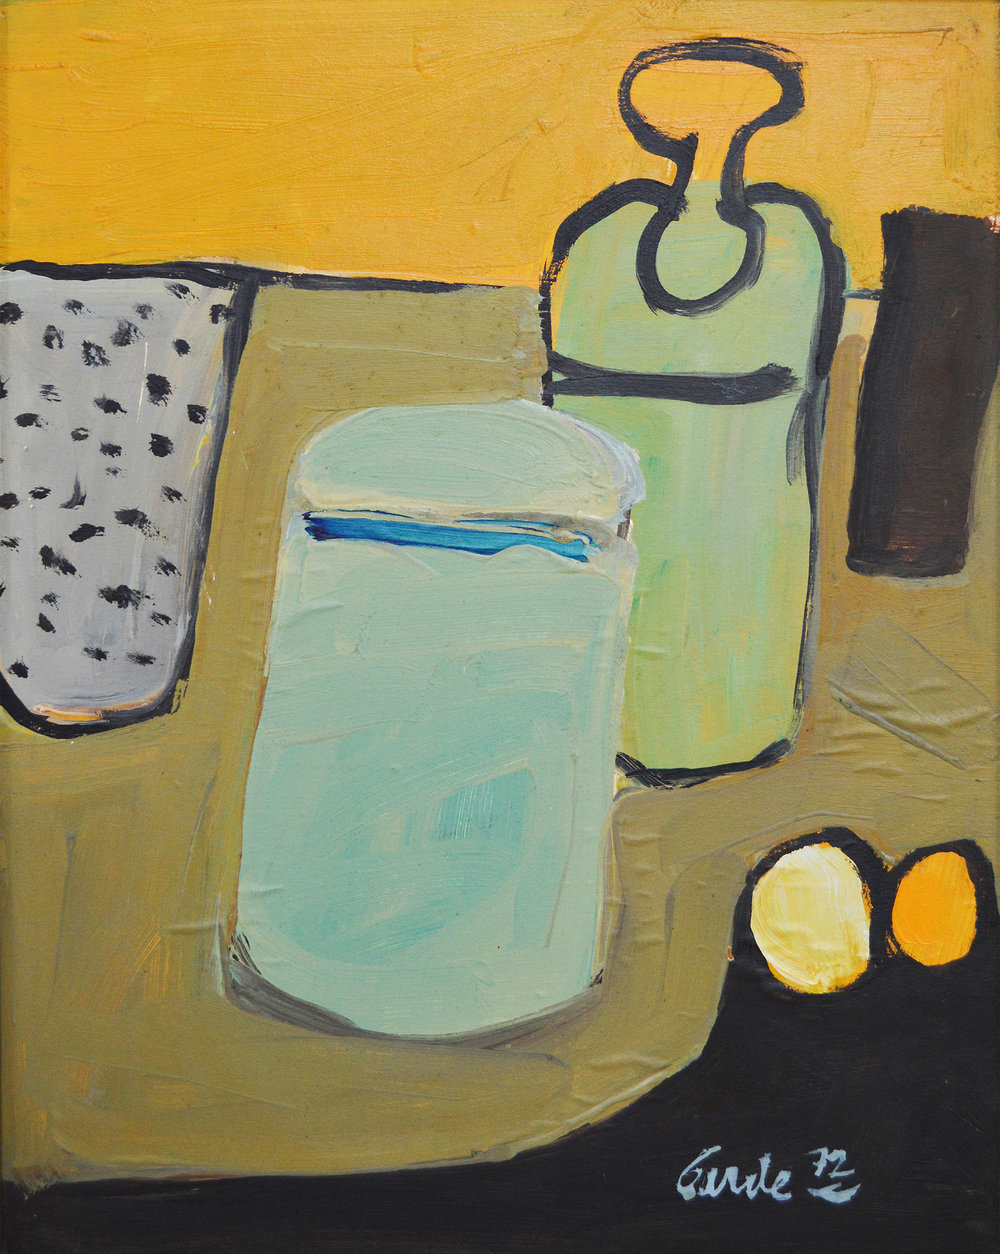 Vessels,  1972. Acrylic on hardboard (masonite),  17 x 13.5 in. (43 x 34 cm.)